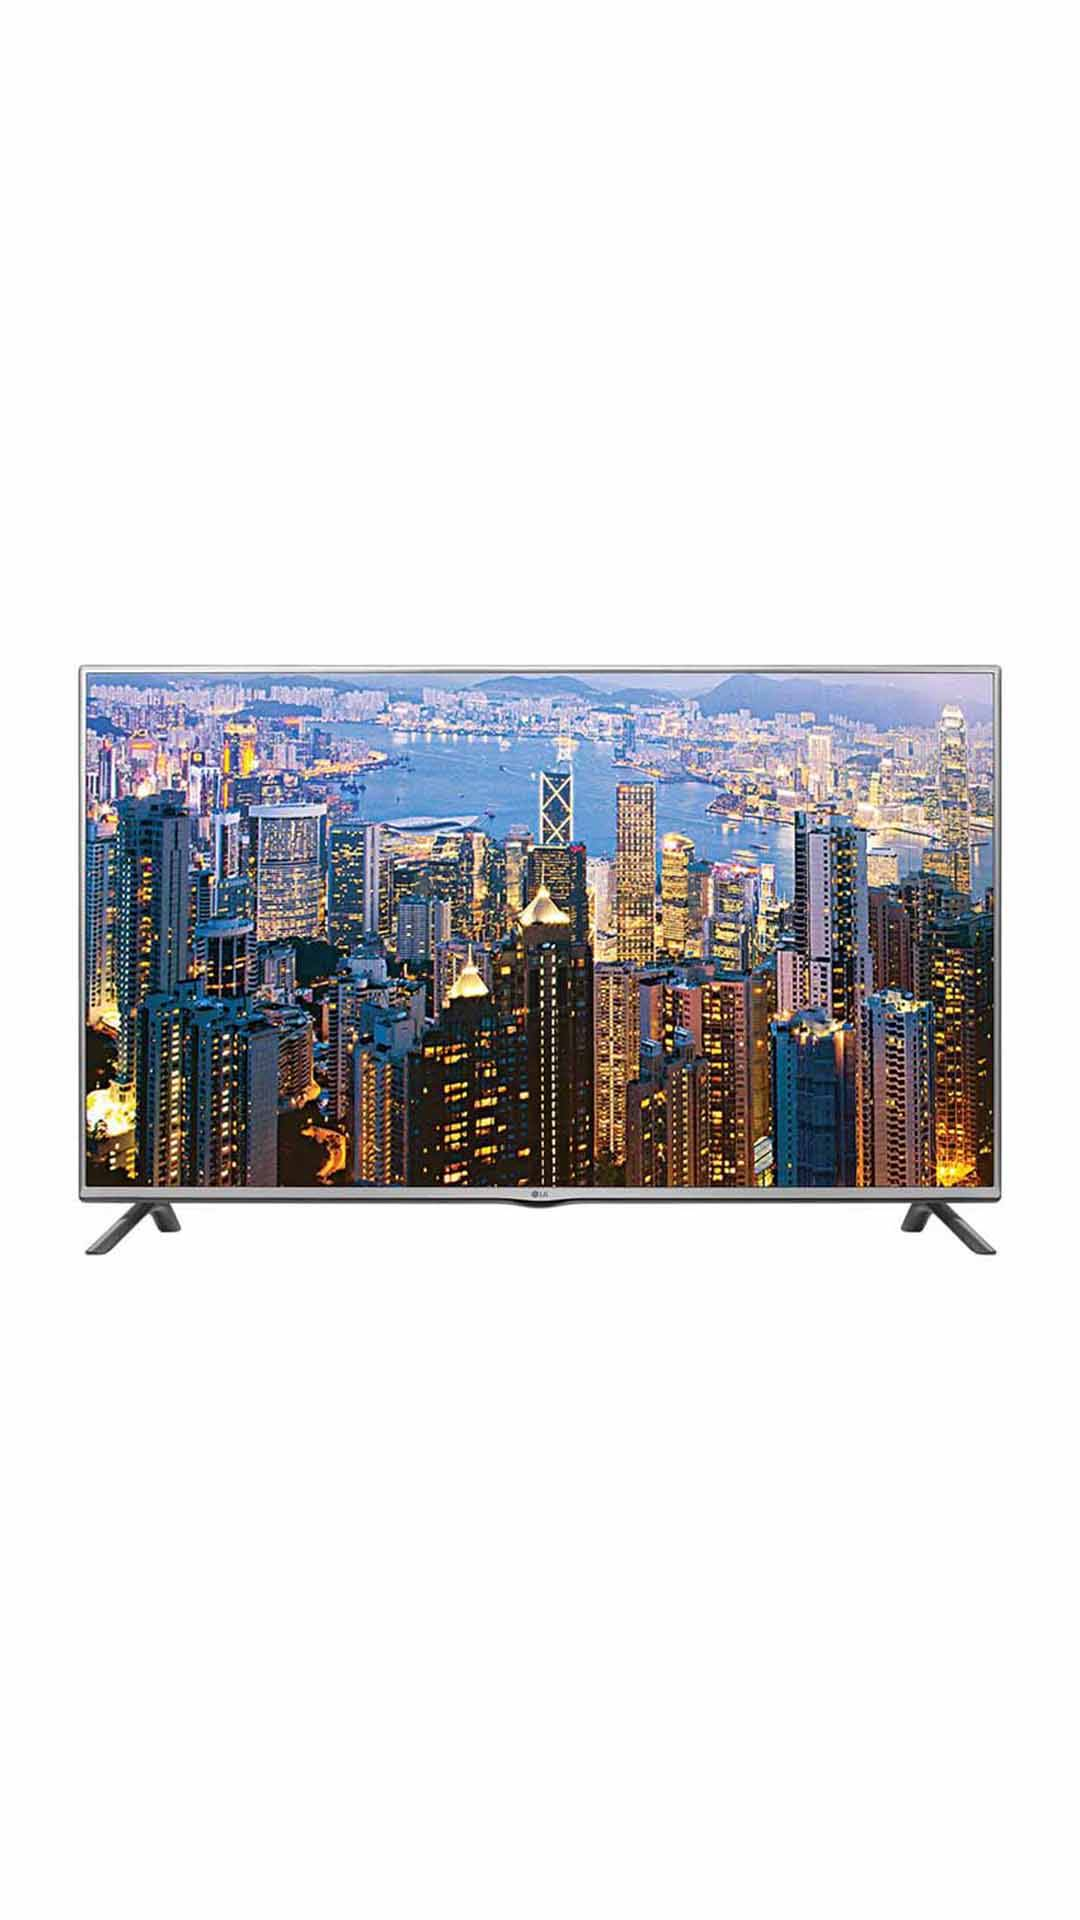 LG 32LF560T 32 Inch Full HD LED TV